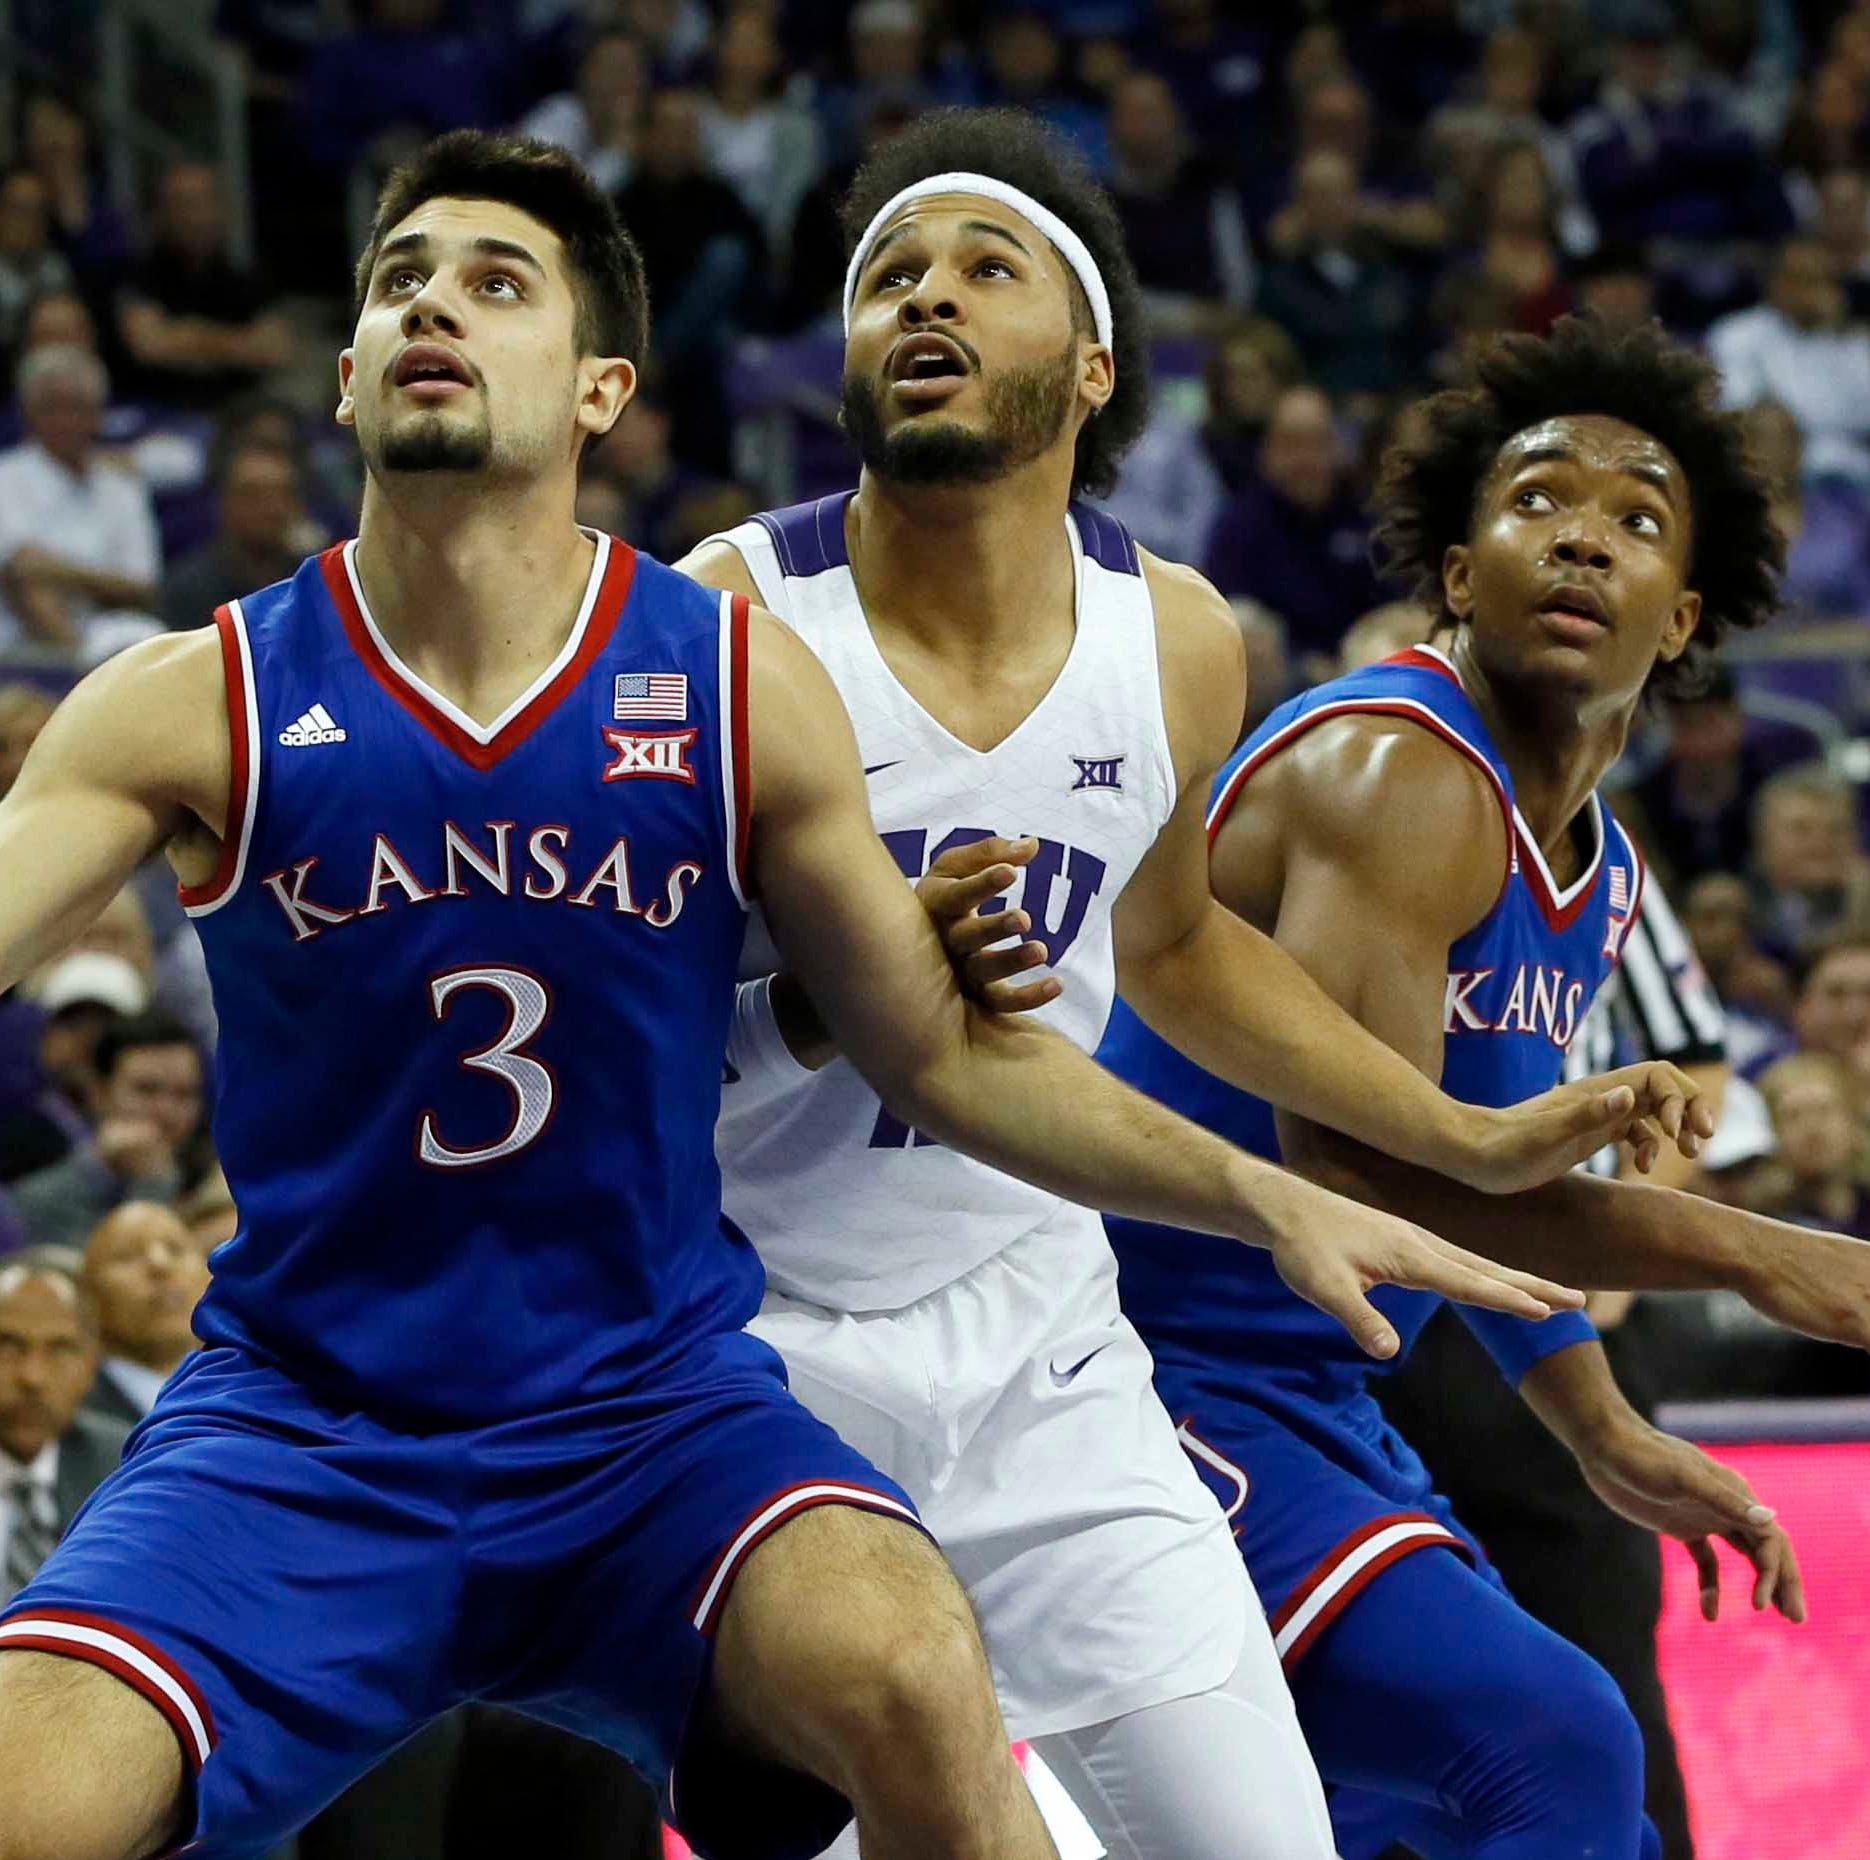 Evansville basketball adds ultra-athletic guard in Kansas transfer Sam Cunliffe